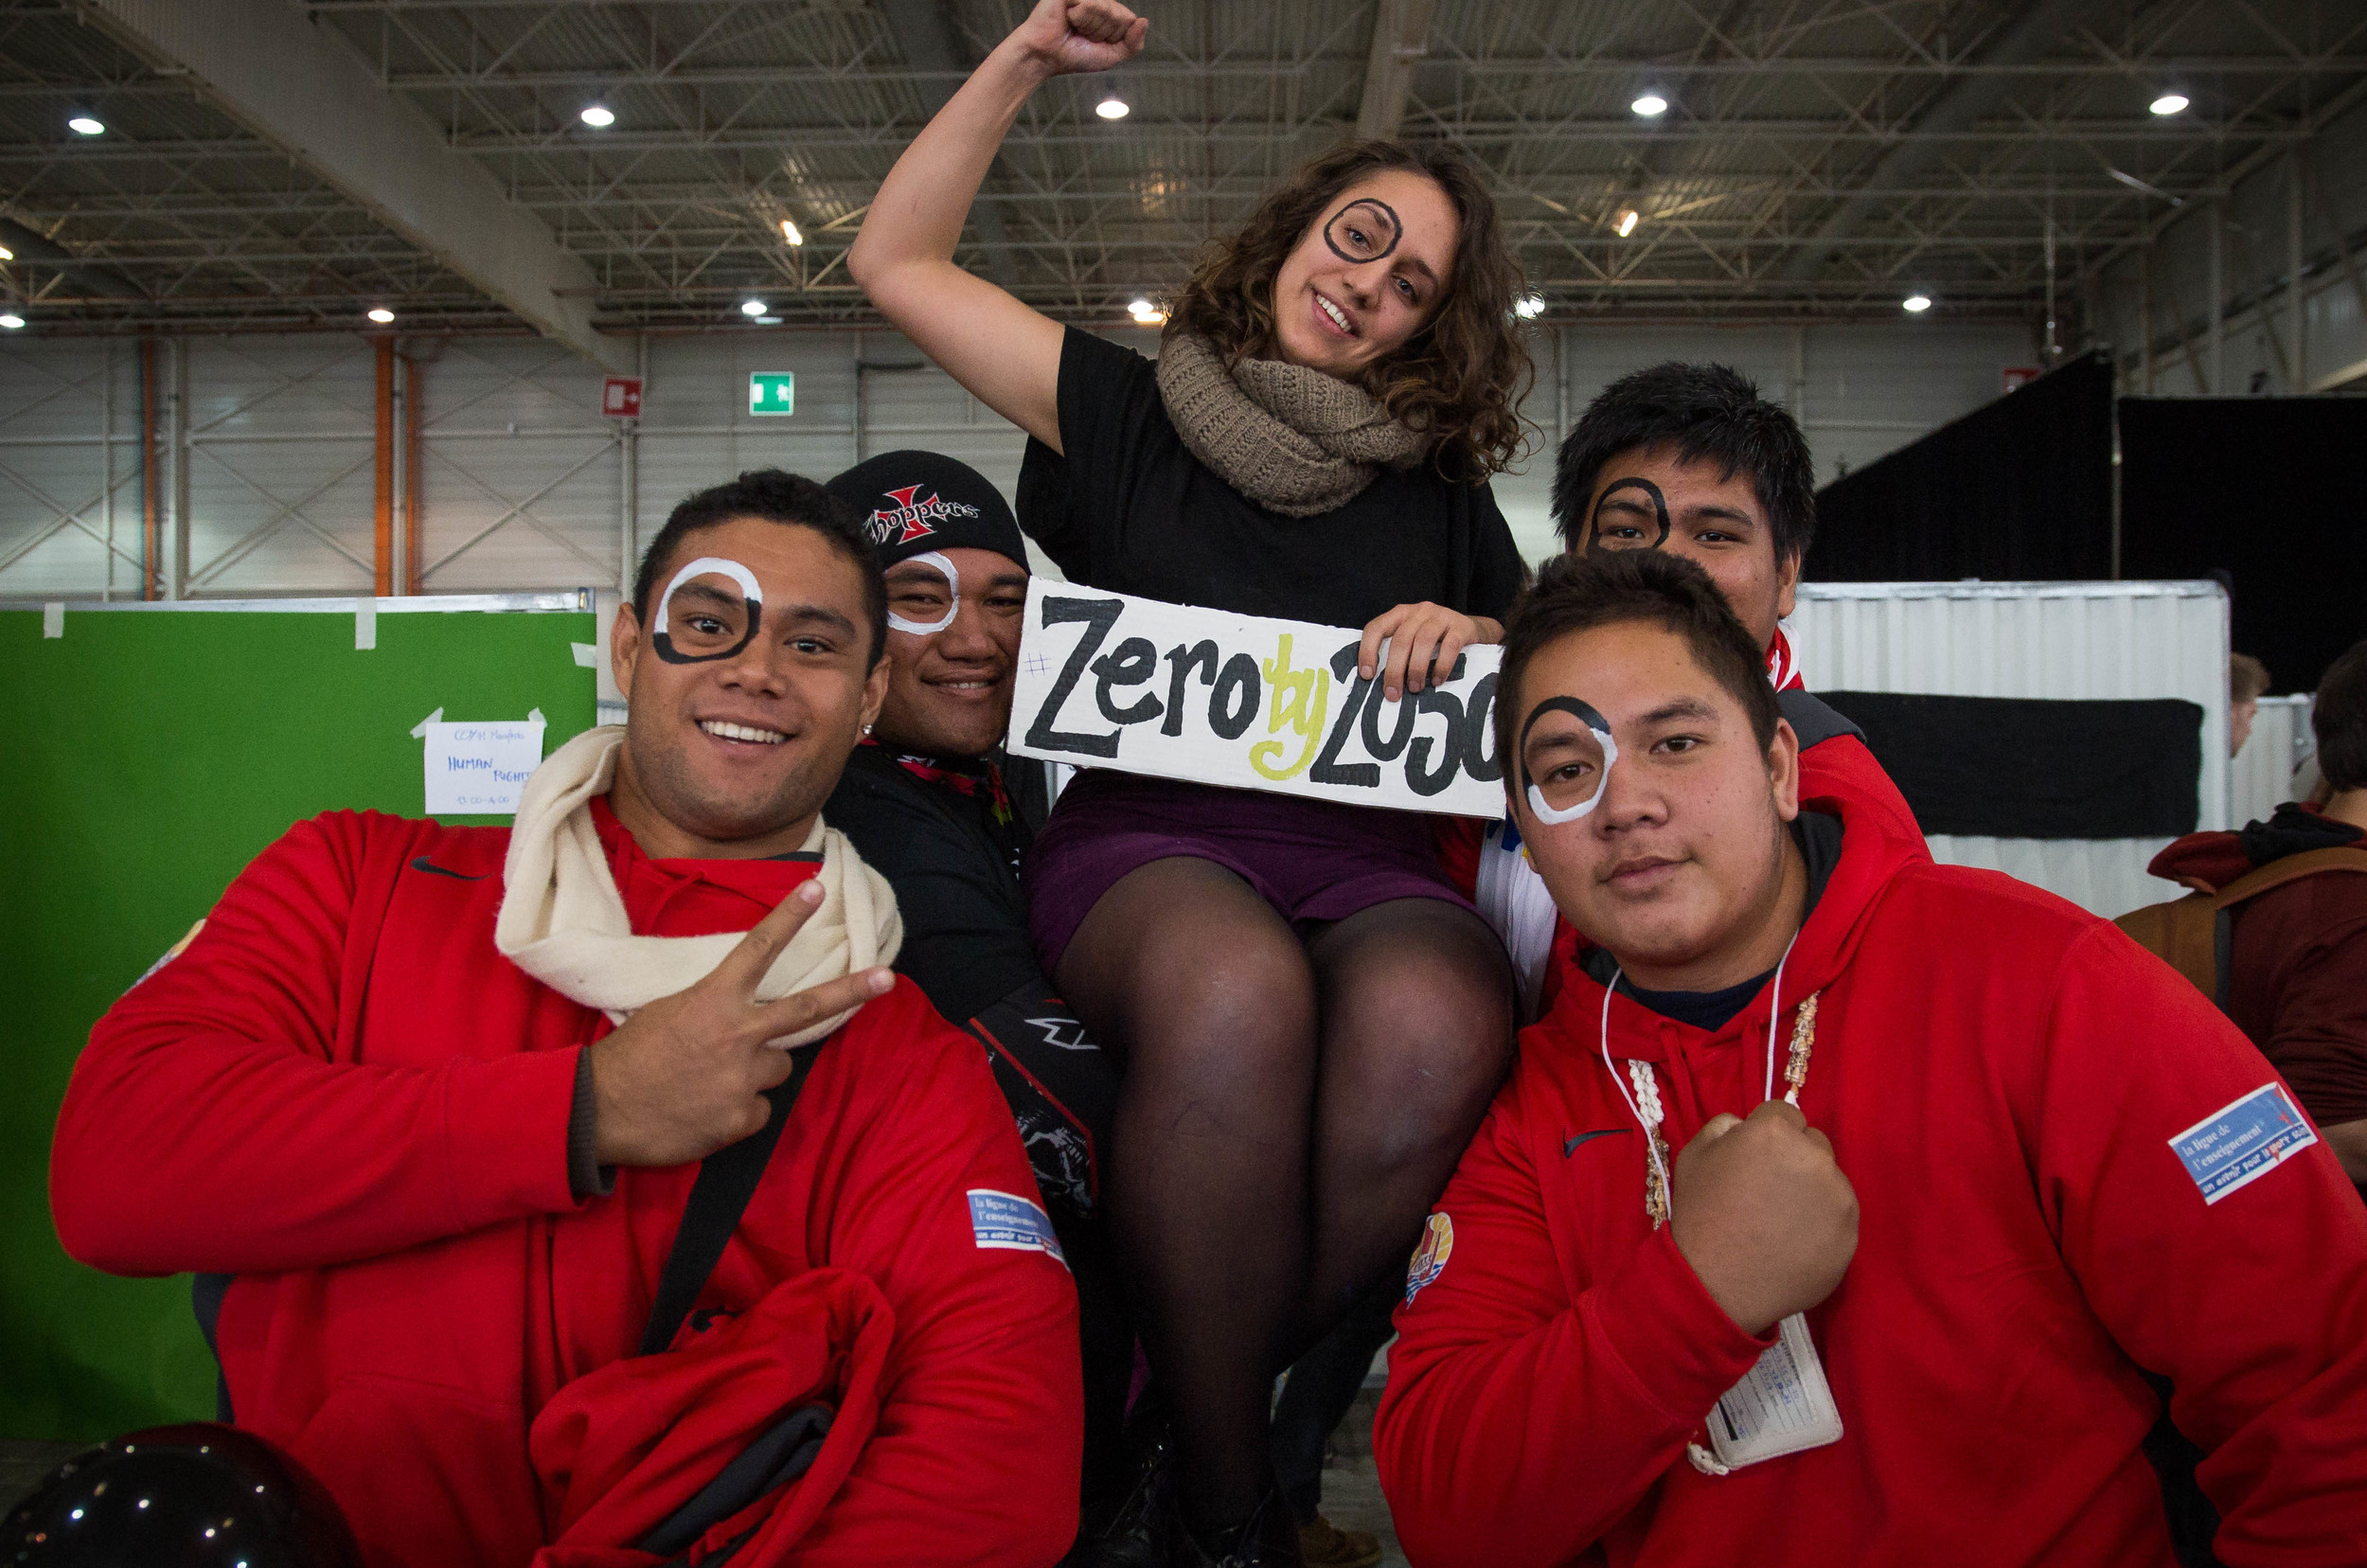 US organizer and SustainUS Delegation leader Dyanna Jaye championing Zero by 2050, being supported by delegates from French Polynesia